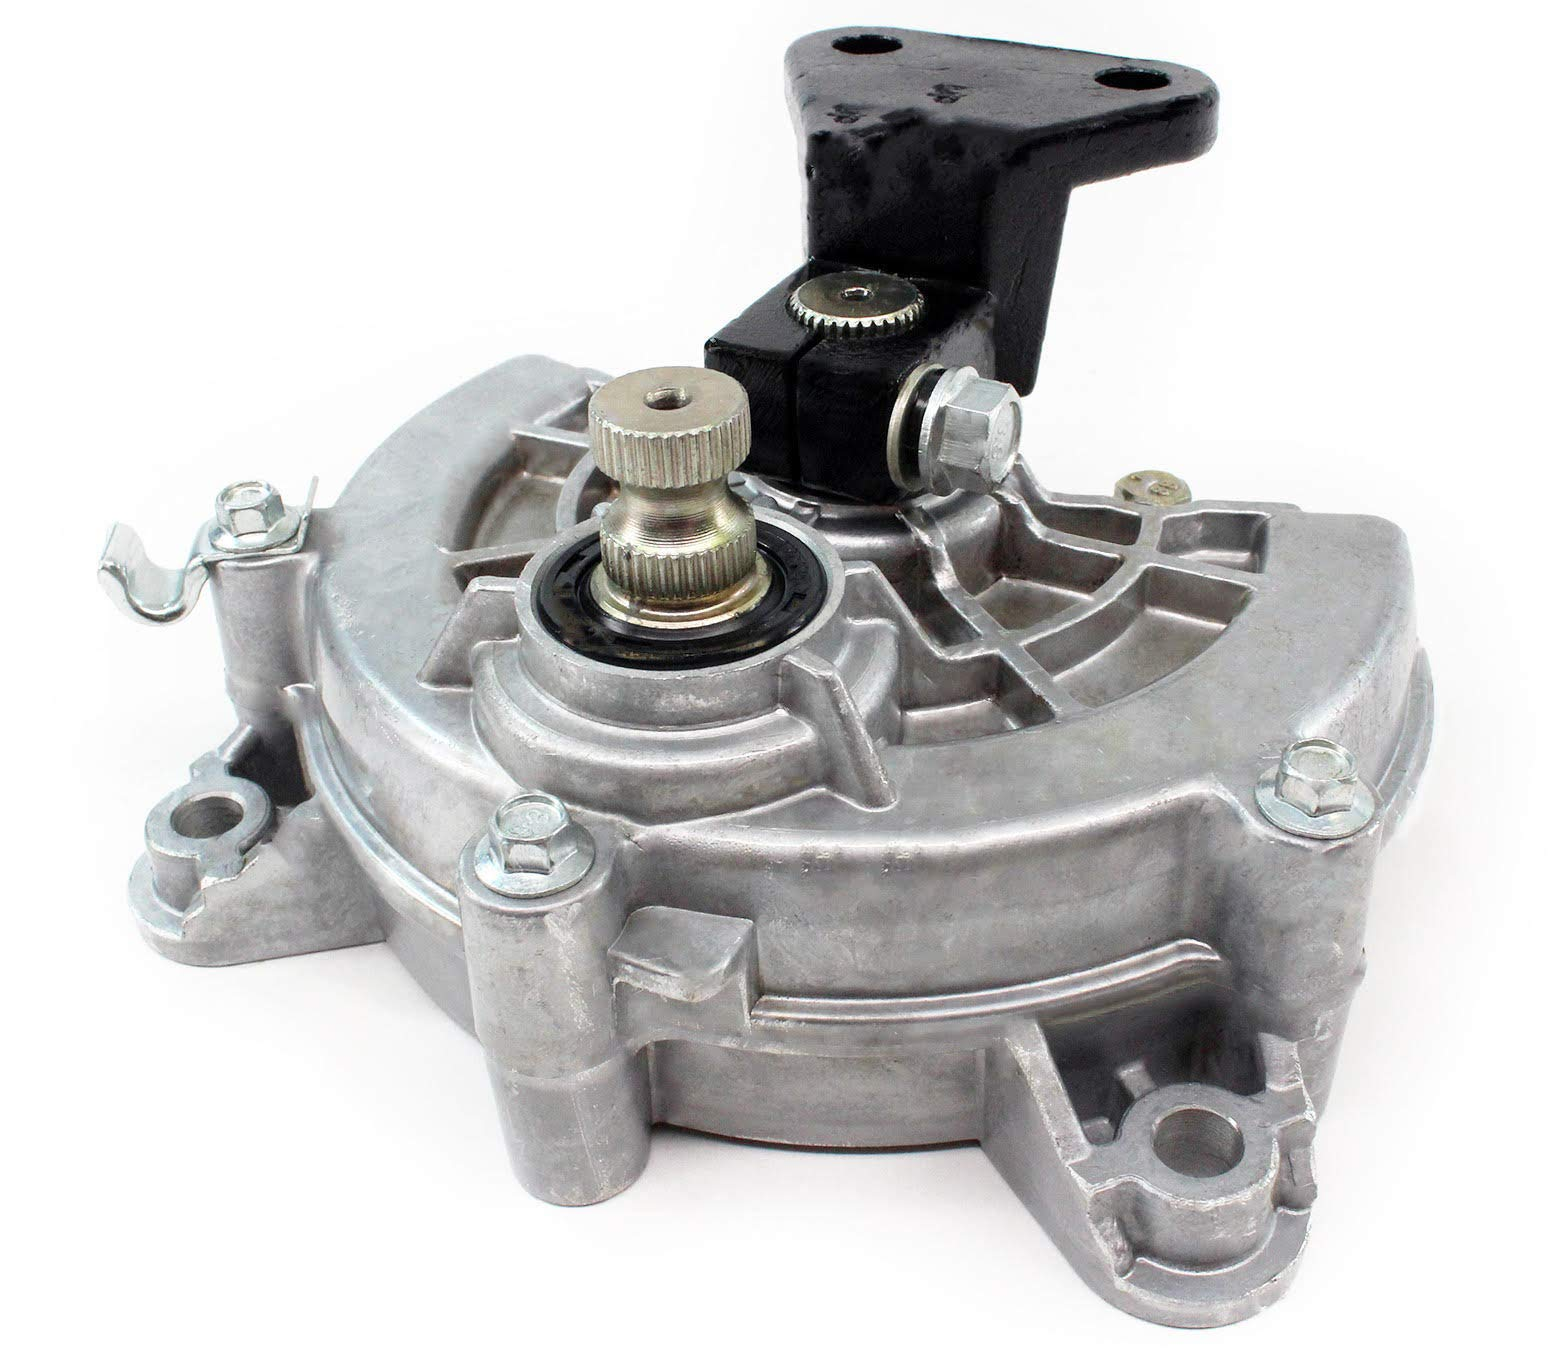 Steering Gear Box Fits Polaris RZR-170 RZR 170 Replaces 0454896, 0455048 by Flip Manufacturing